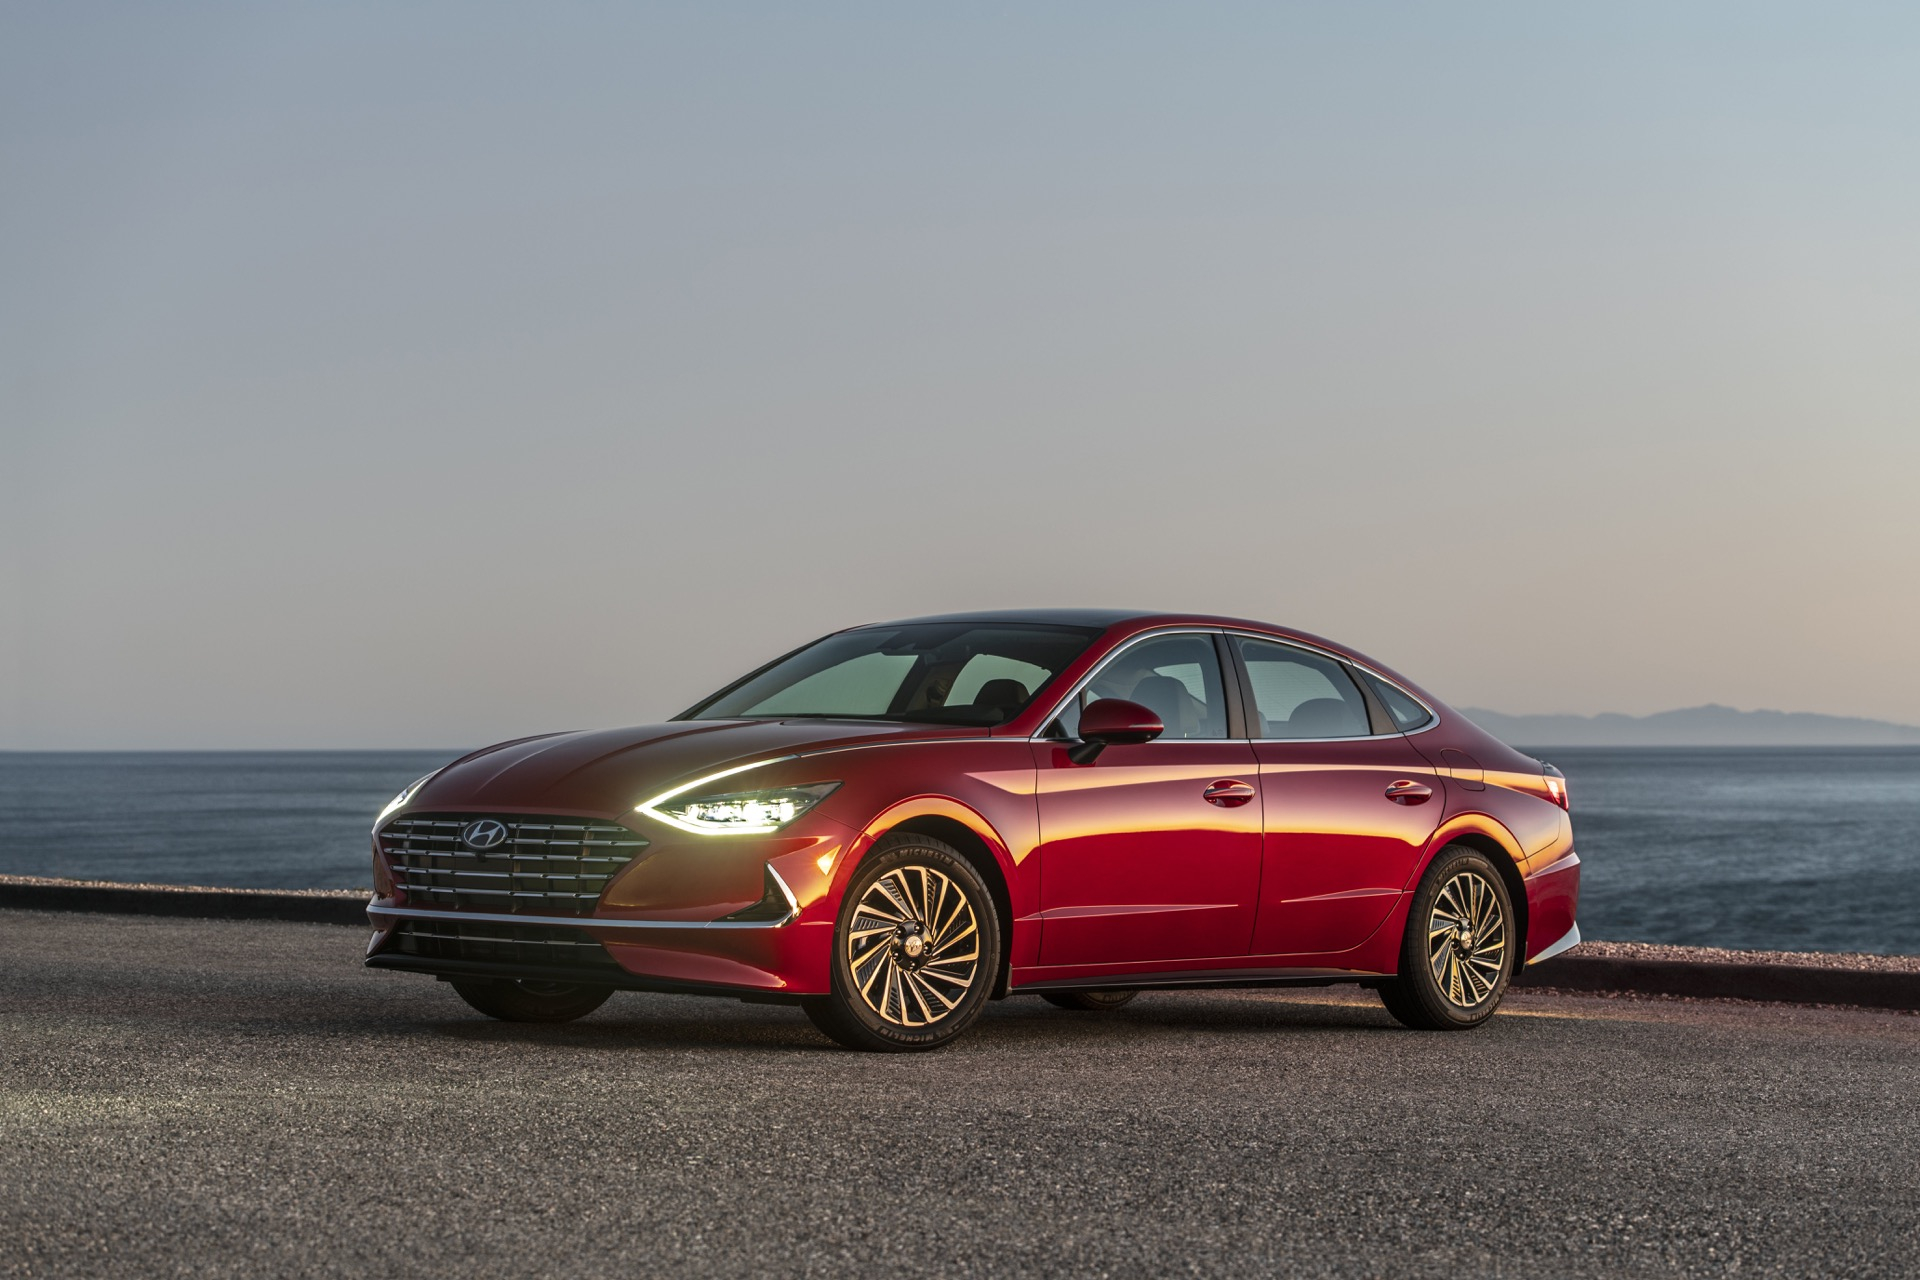 2020 Hyundai Sonata Review, Ratings, Specs, Prices, And